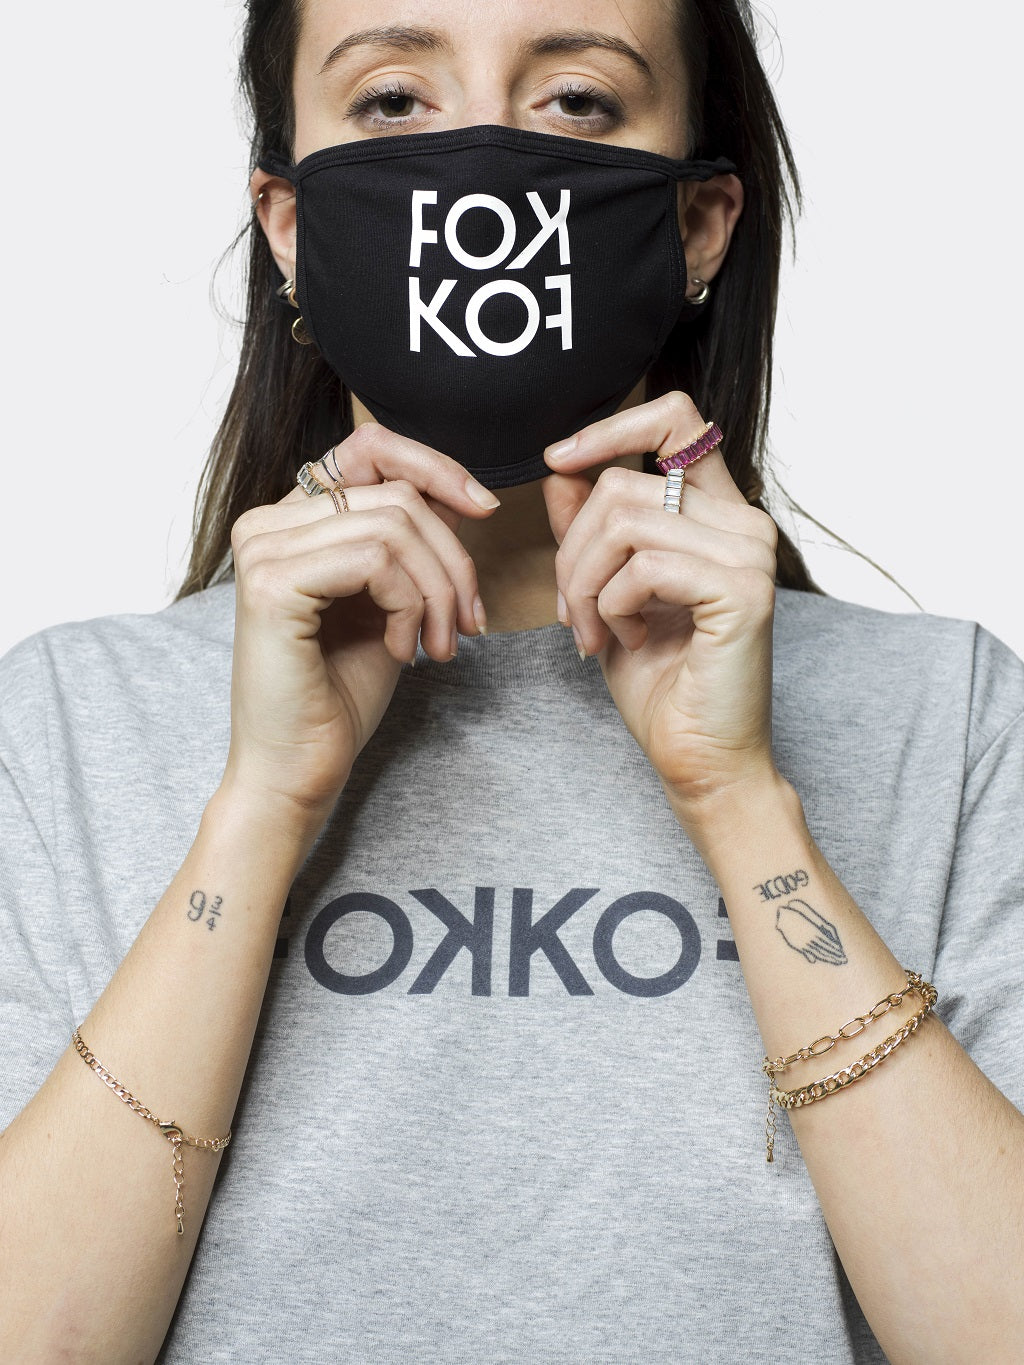 The Fokkof Mask